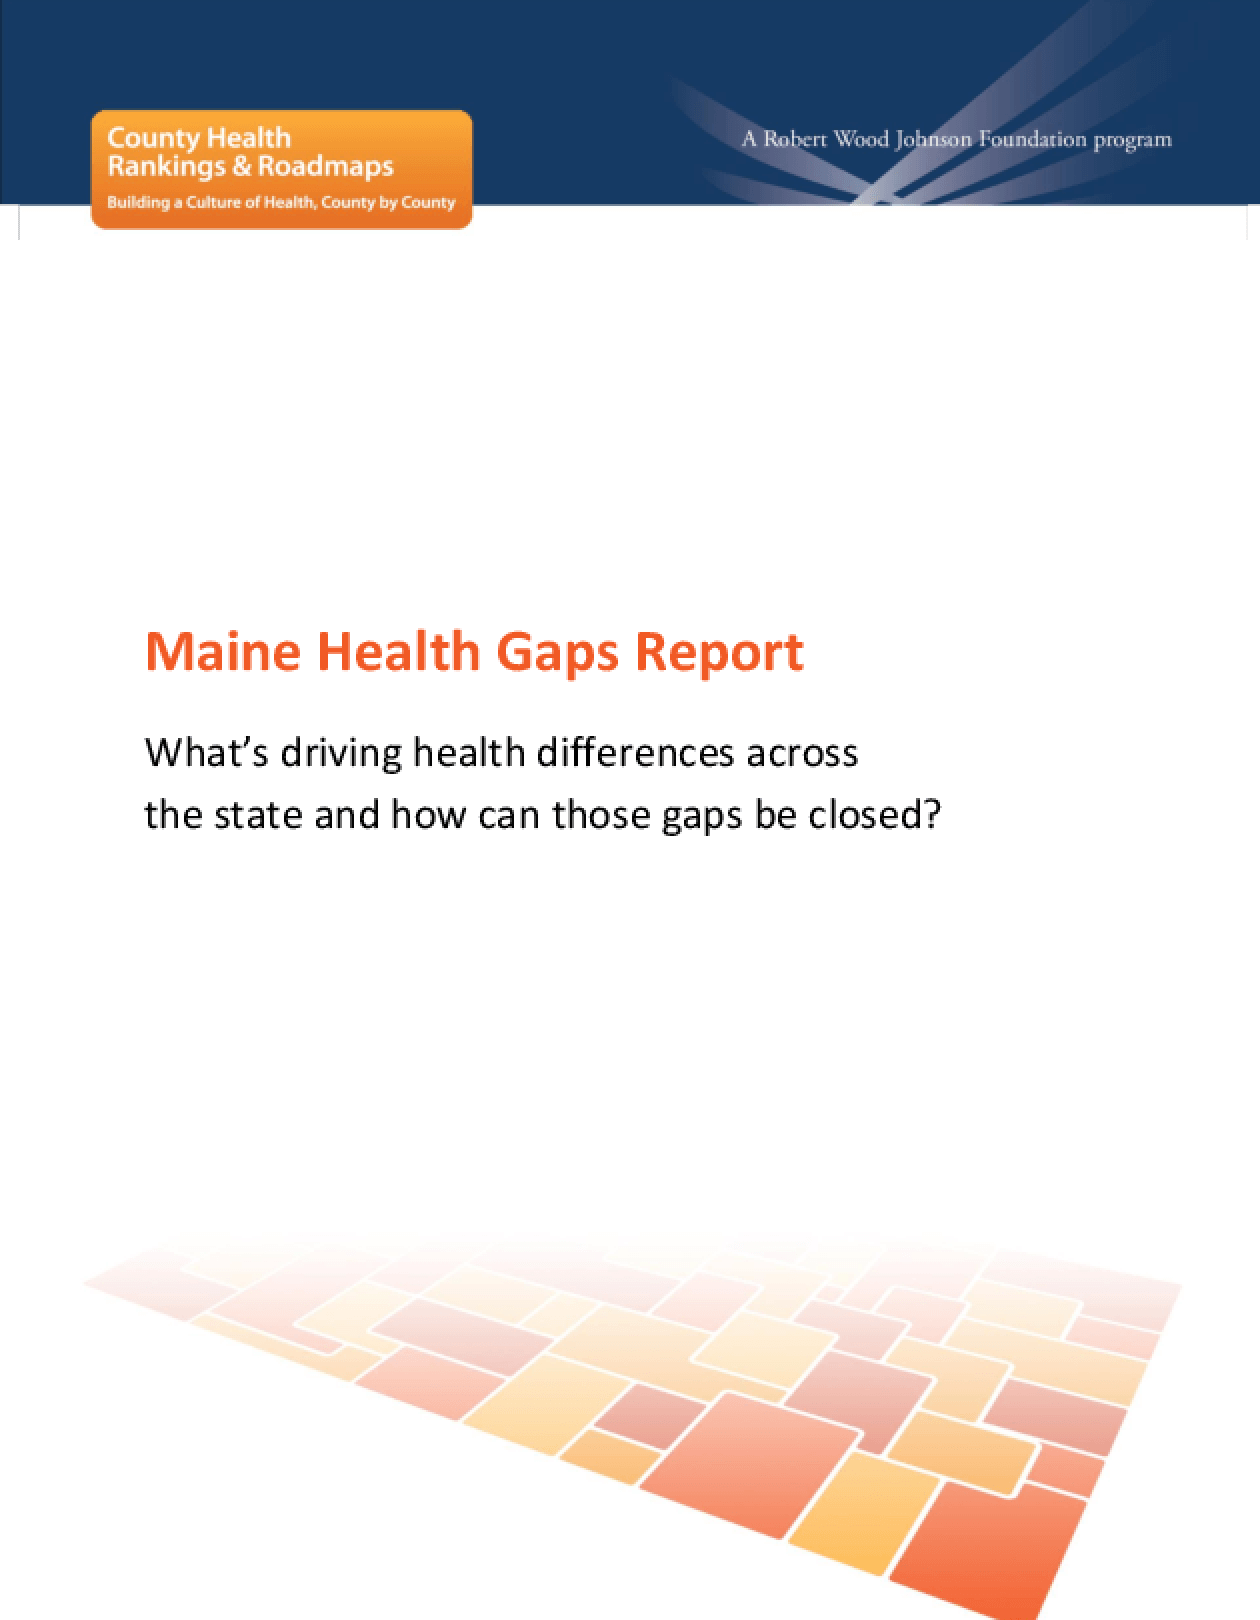 Maine Health Gaps Report: What's Driving Health Differences Across the State and How Can Those Gaps Be Closed?